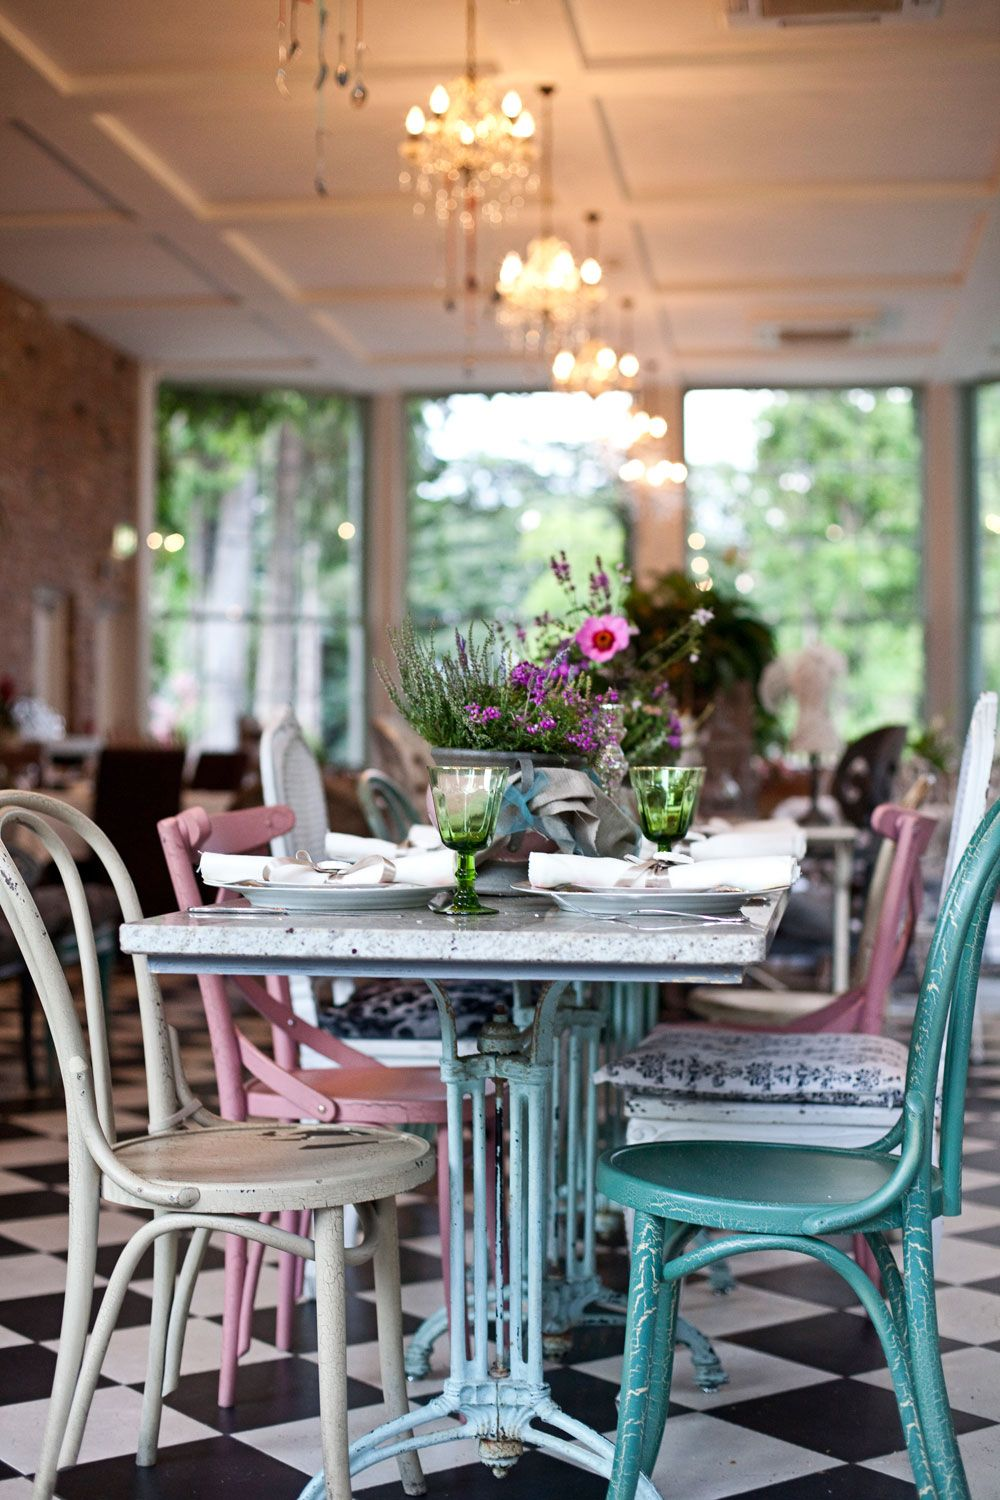 the fern cafe restaurant in county wicklow, ireland. they have